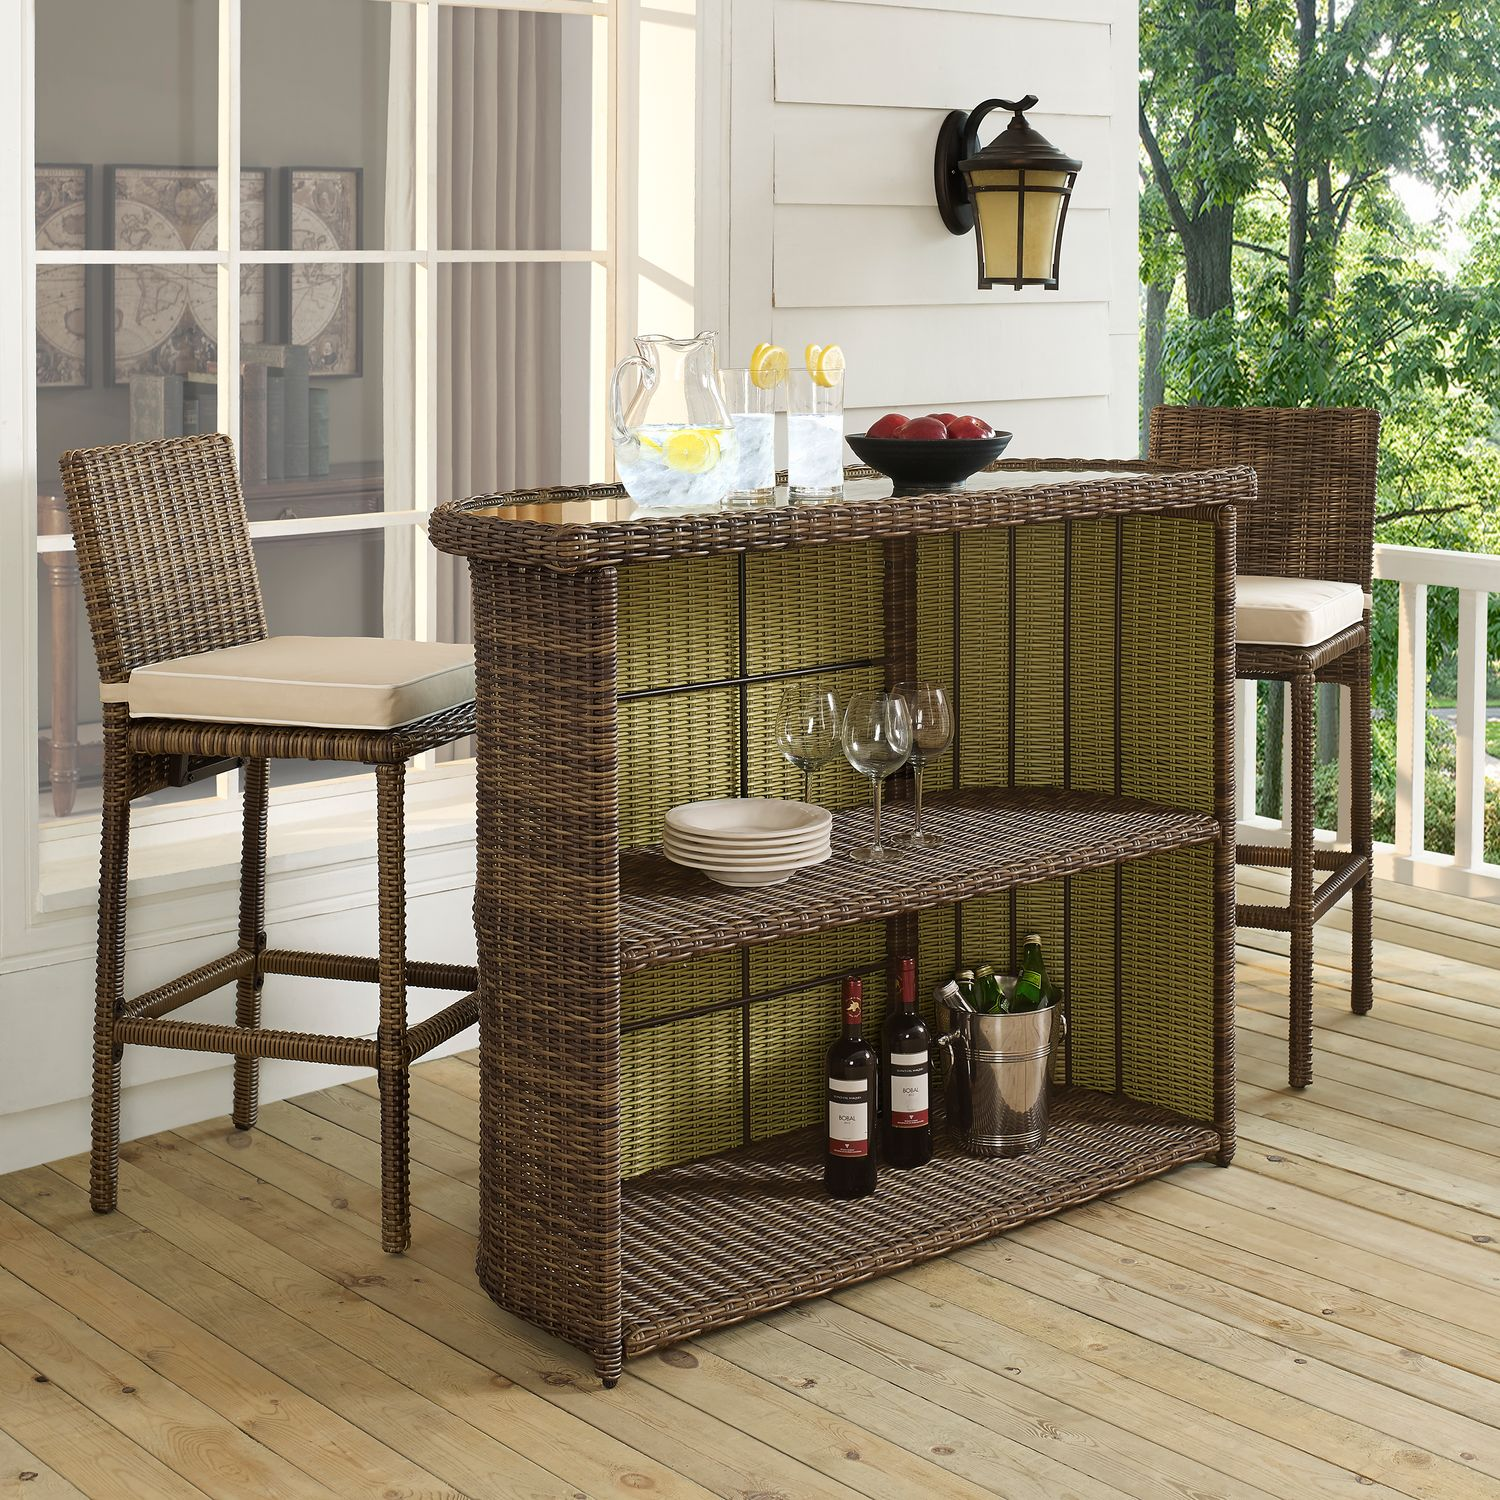 Outdoor Furniture - Destin Outdoor Bar and 2 Barstools